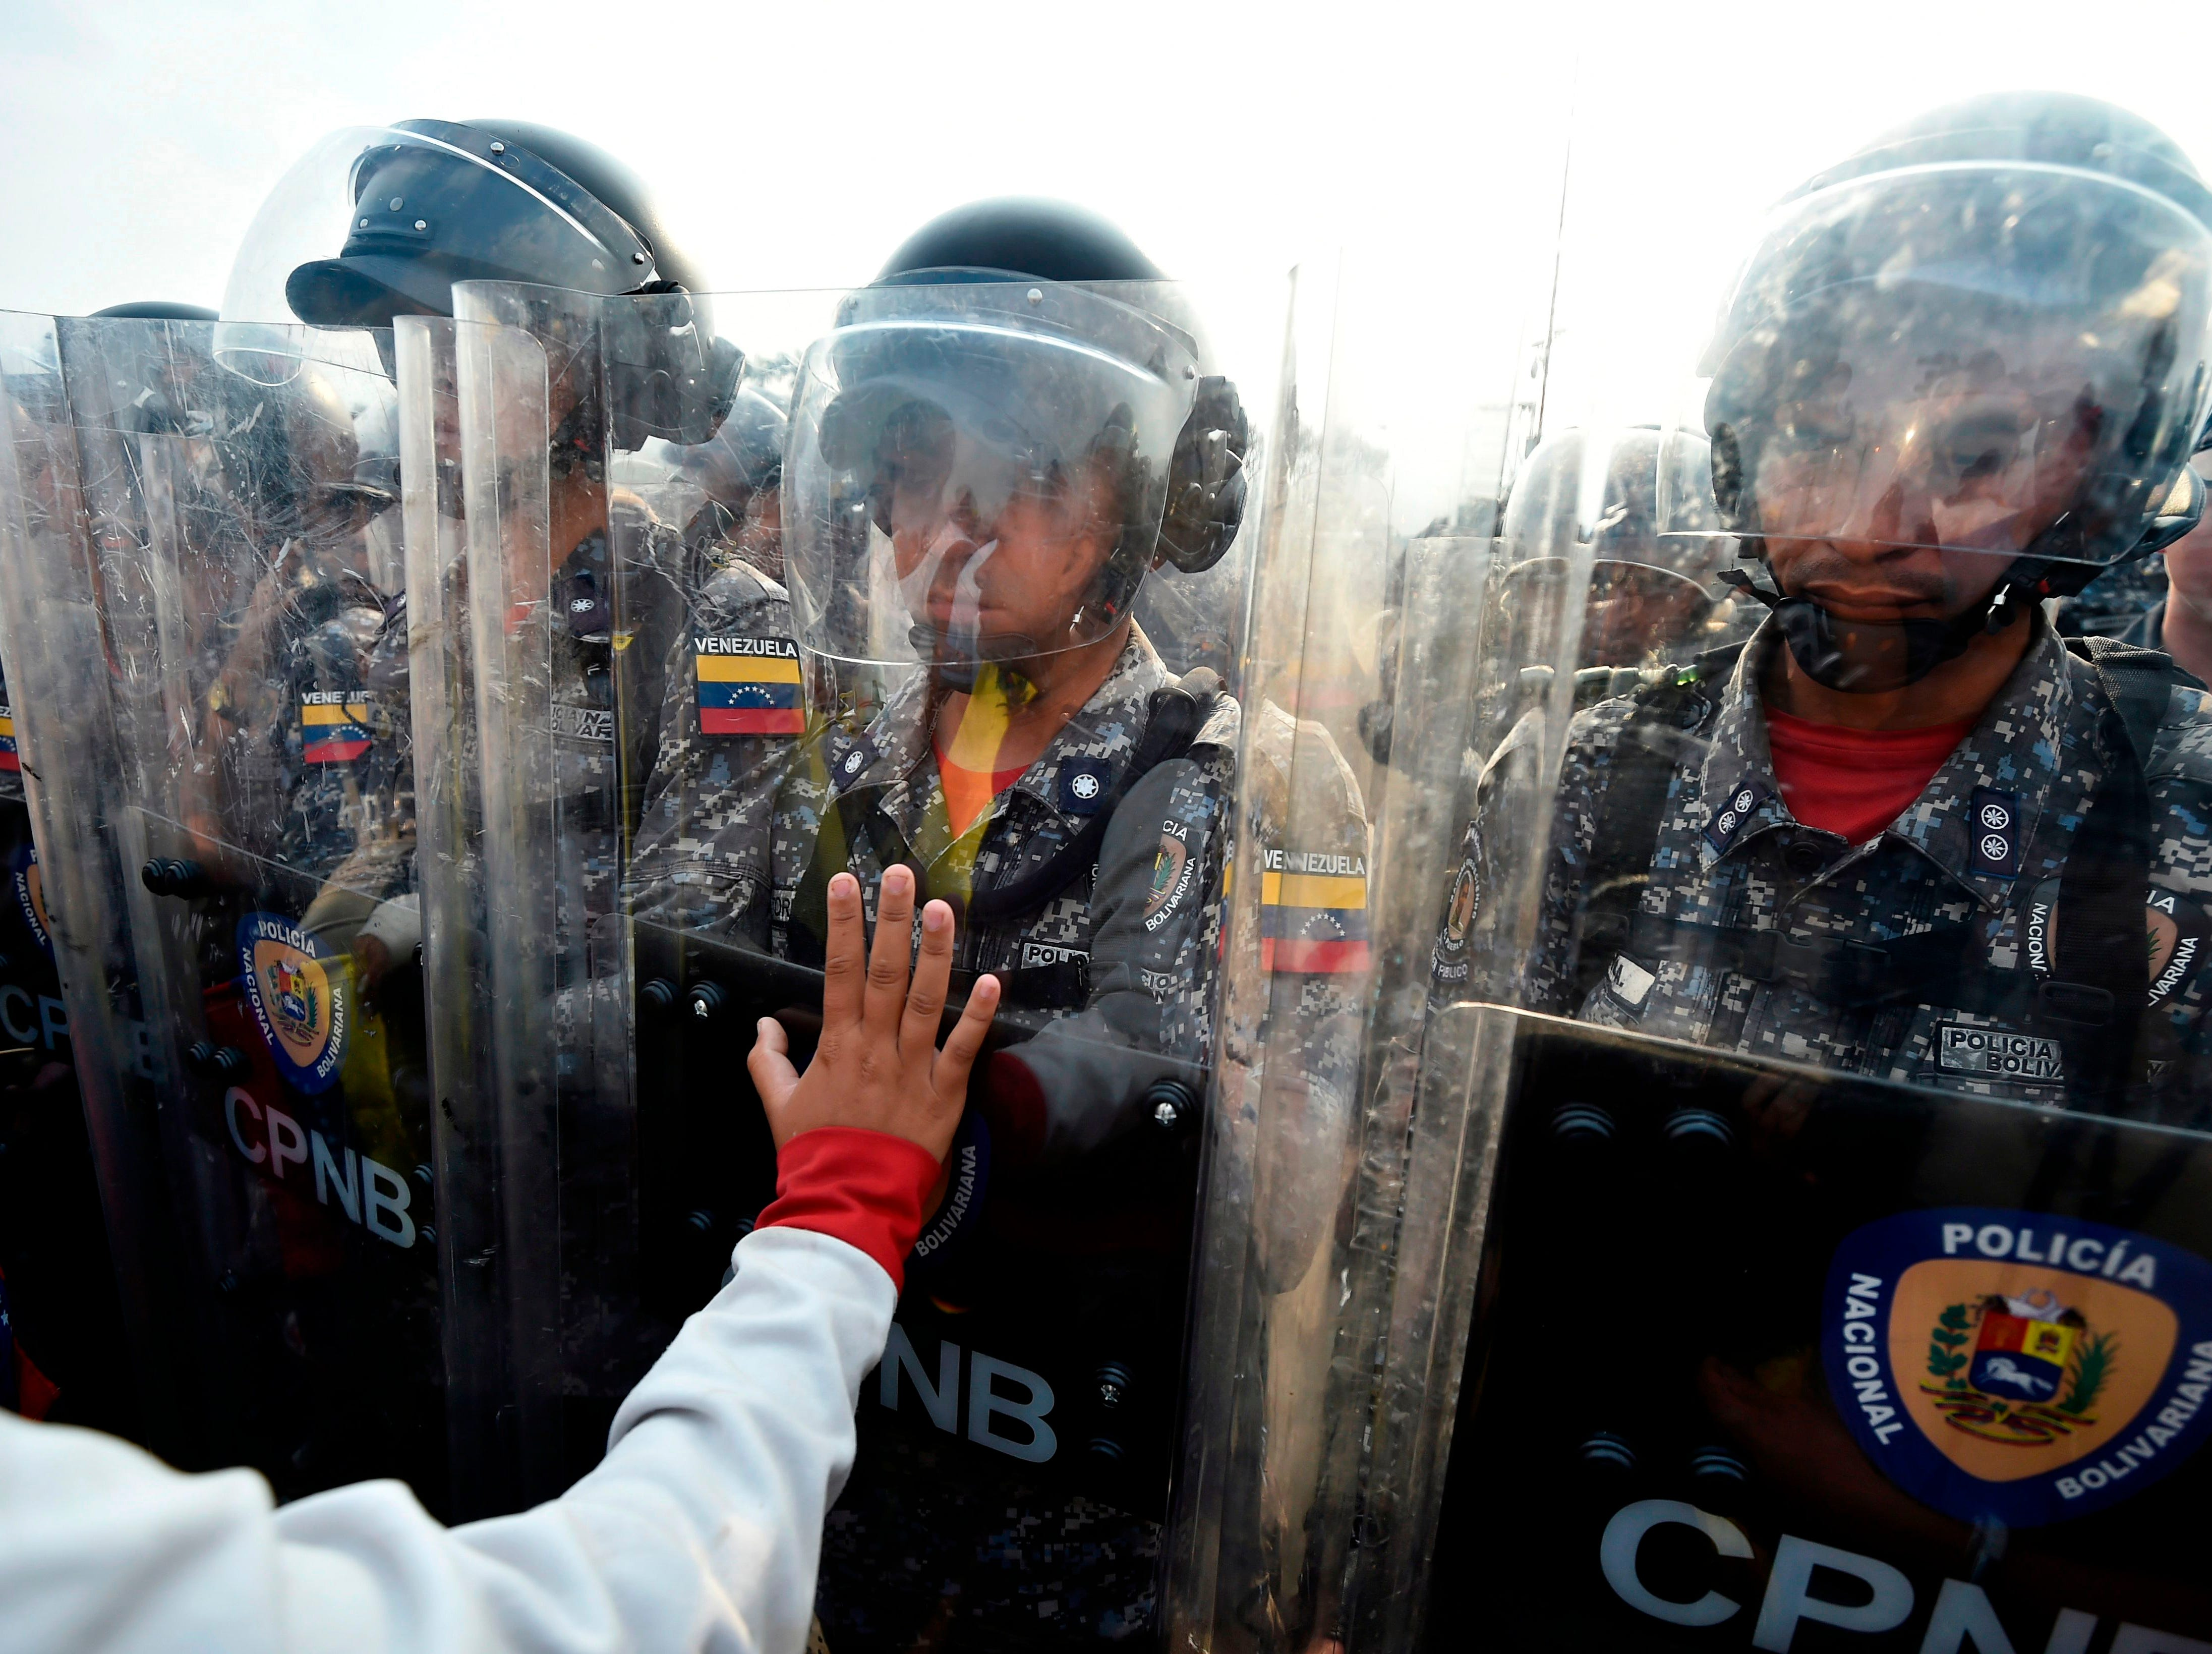 Venezuelans confront national policemen demanding them to let the humanitarian aid in, at the Simon Bolivar bridge, in Cucuta, Colombia after President Nicolas Maduro's government ordered to temporary close down the border with Colombia on Feb. 23, 2019.